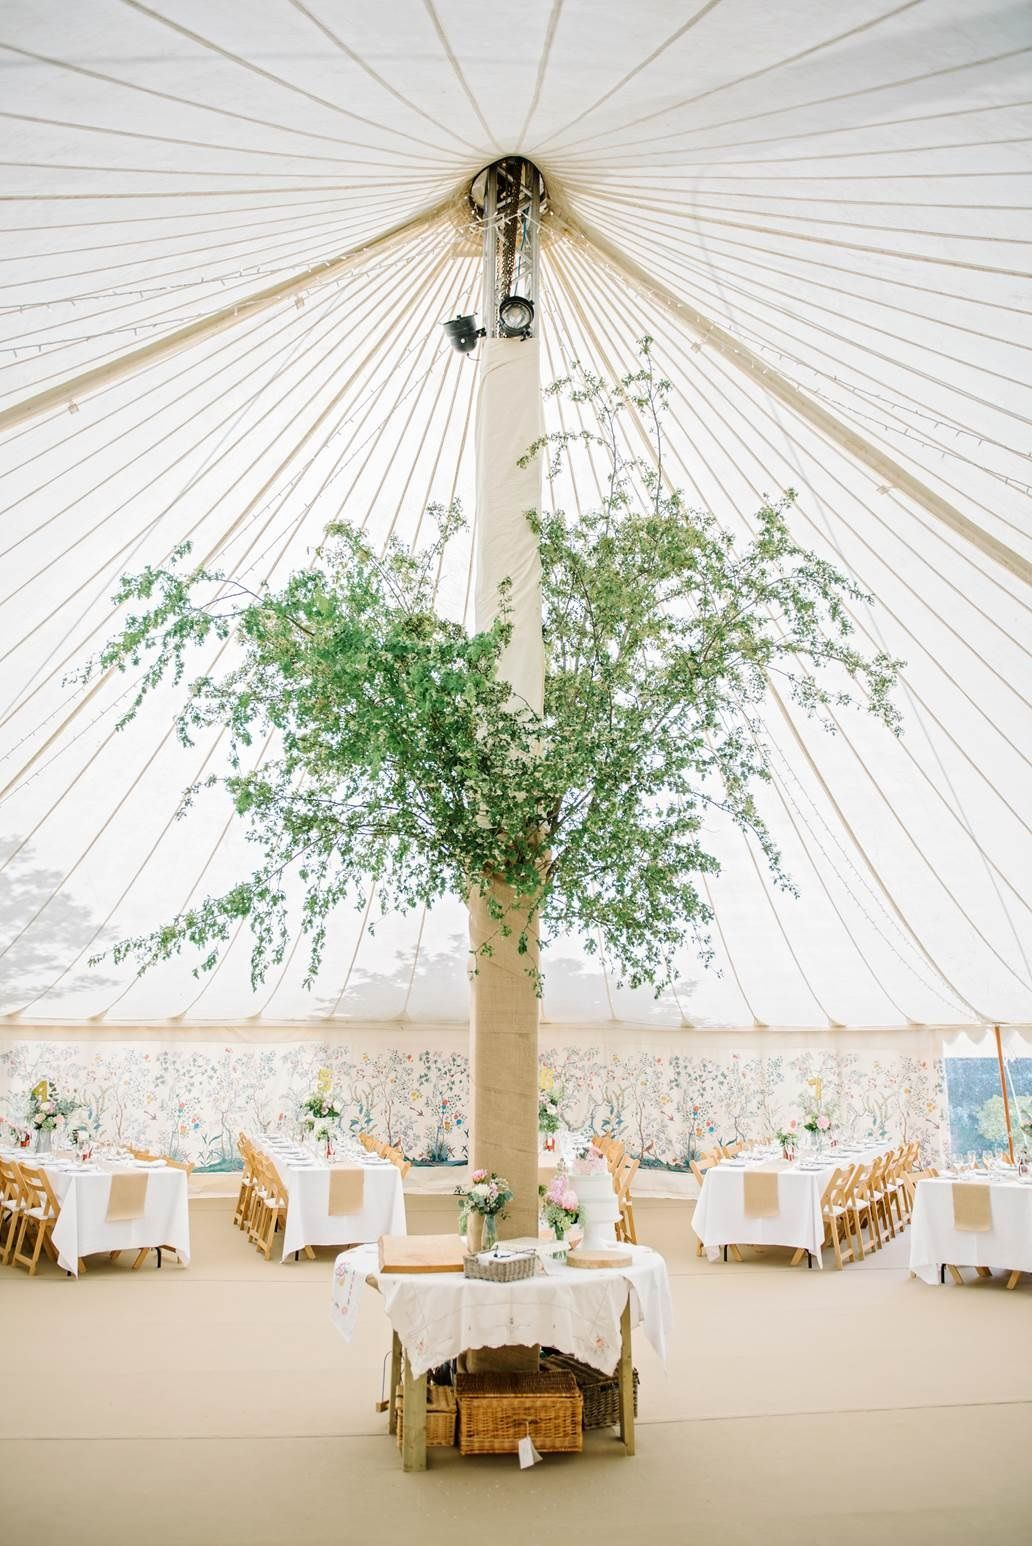 Decoration Chapiteau De Reception Lpm Bohemia S Traditional Circular Tent With A Tree Pole Feature